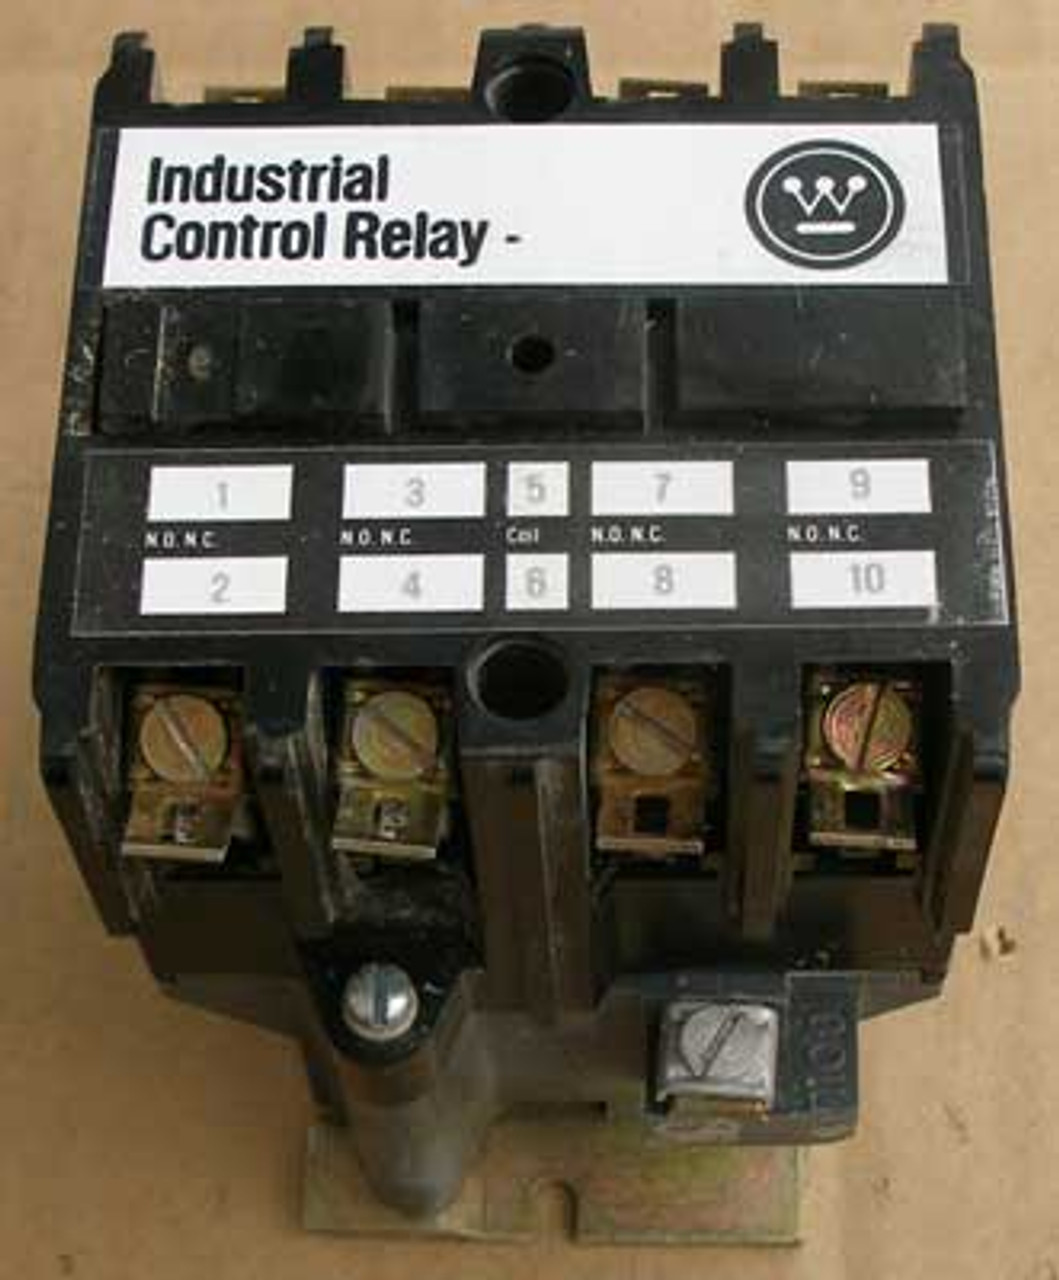 Westinghouse ARB440A Industrial Control Relay 300V 4 Pole 10 Amp - Used